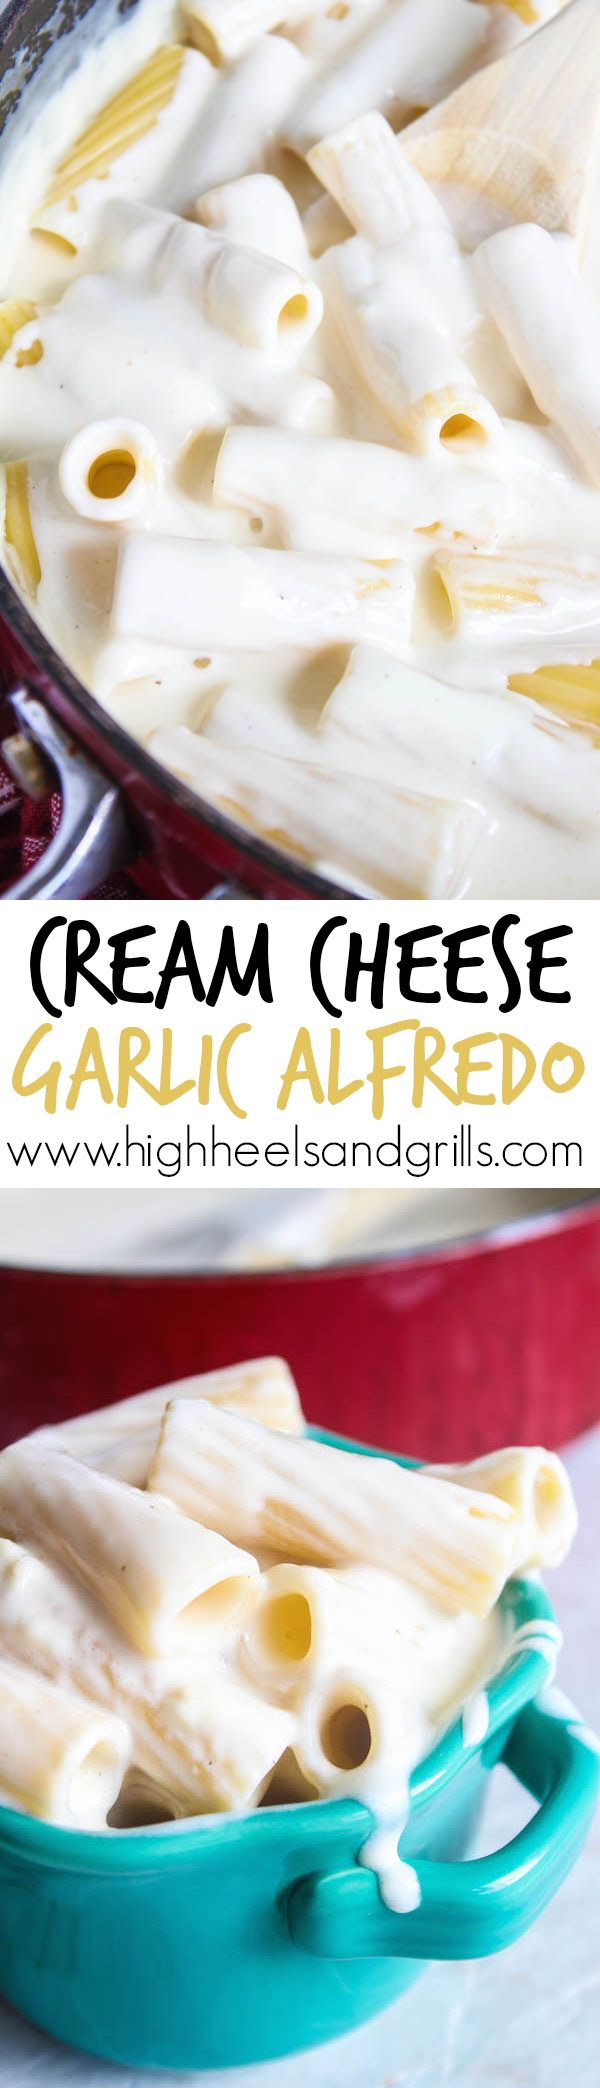 Cream Cheese Garlic Alfredo - The easiest Alfredo I have ever made and tastes better than any restaurant Alfredo I've ever had!